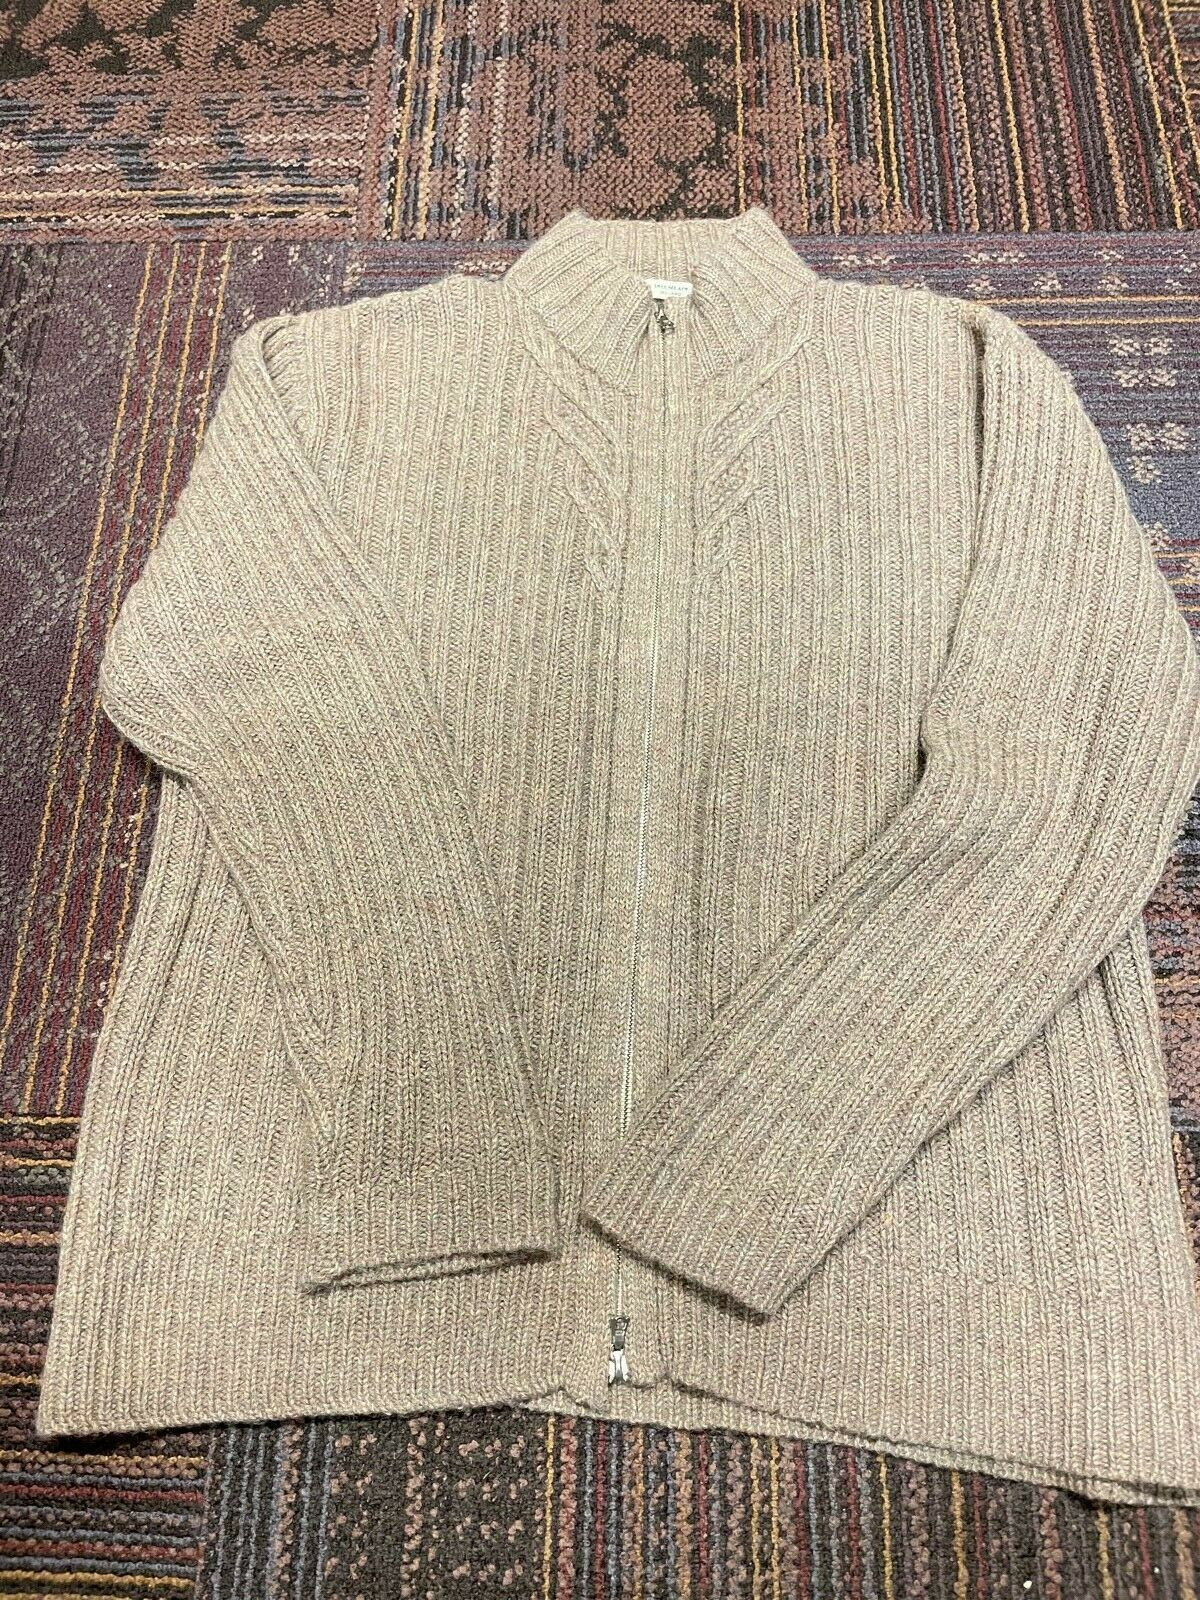 Women's Inis Meain cable knit sweater XL cashmere… - image 3